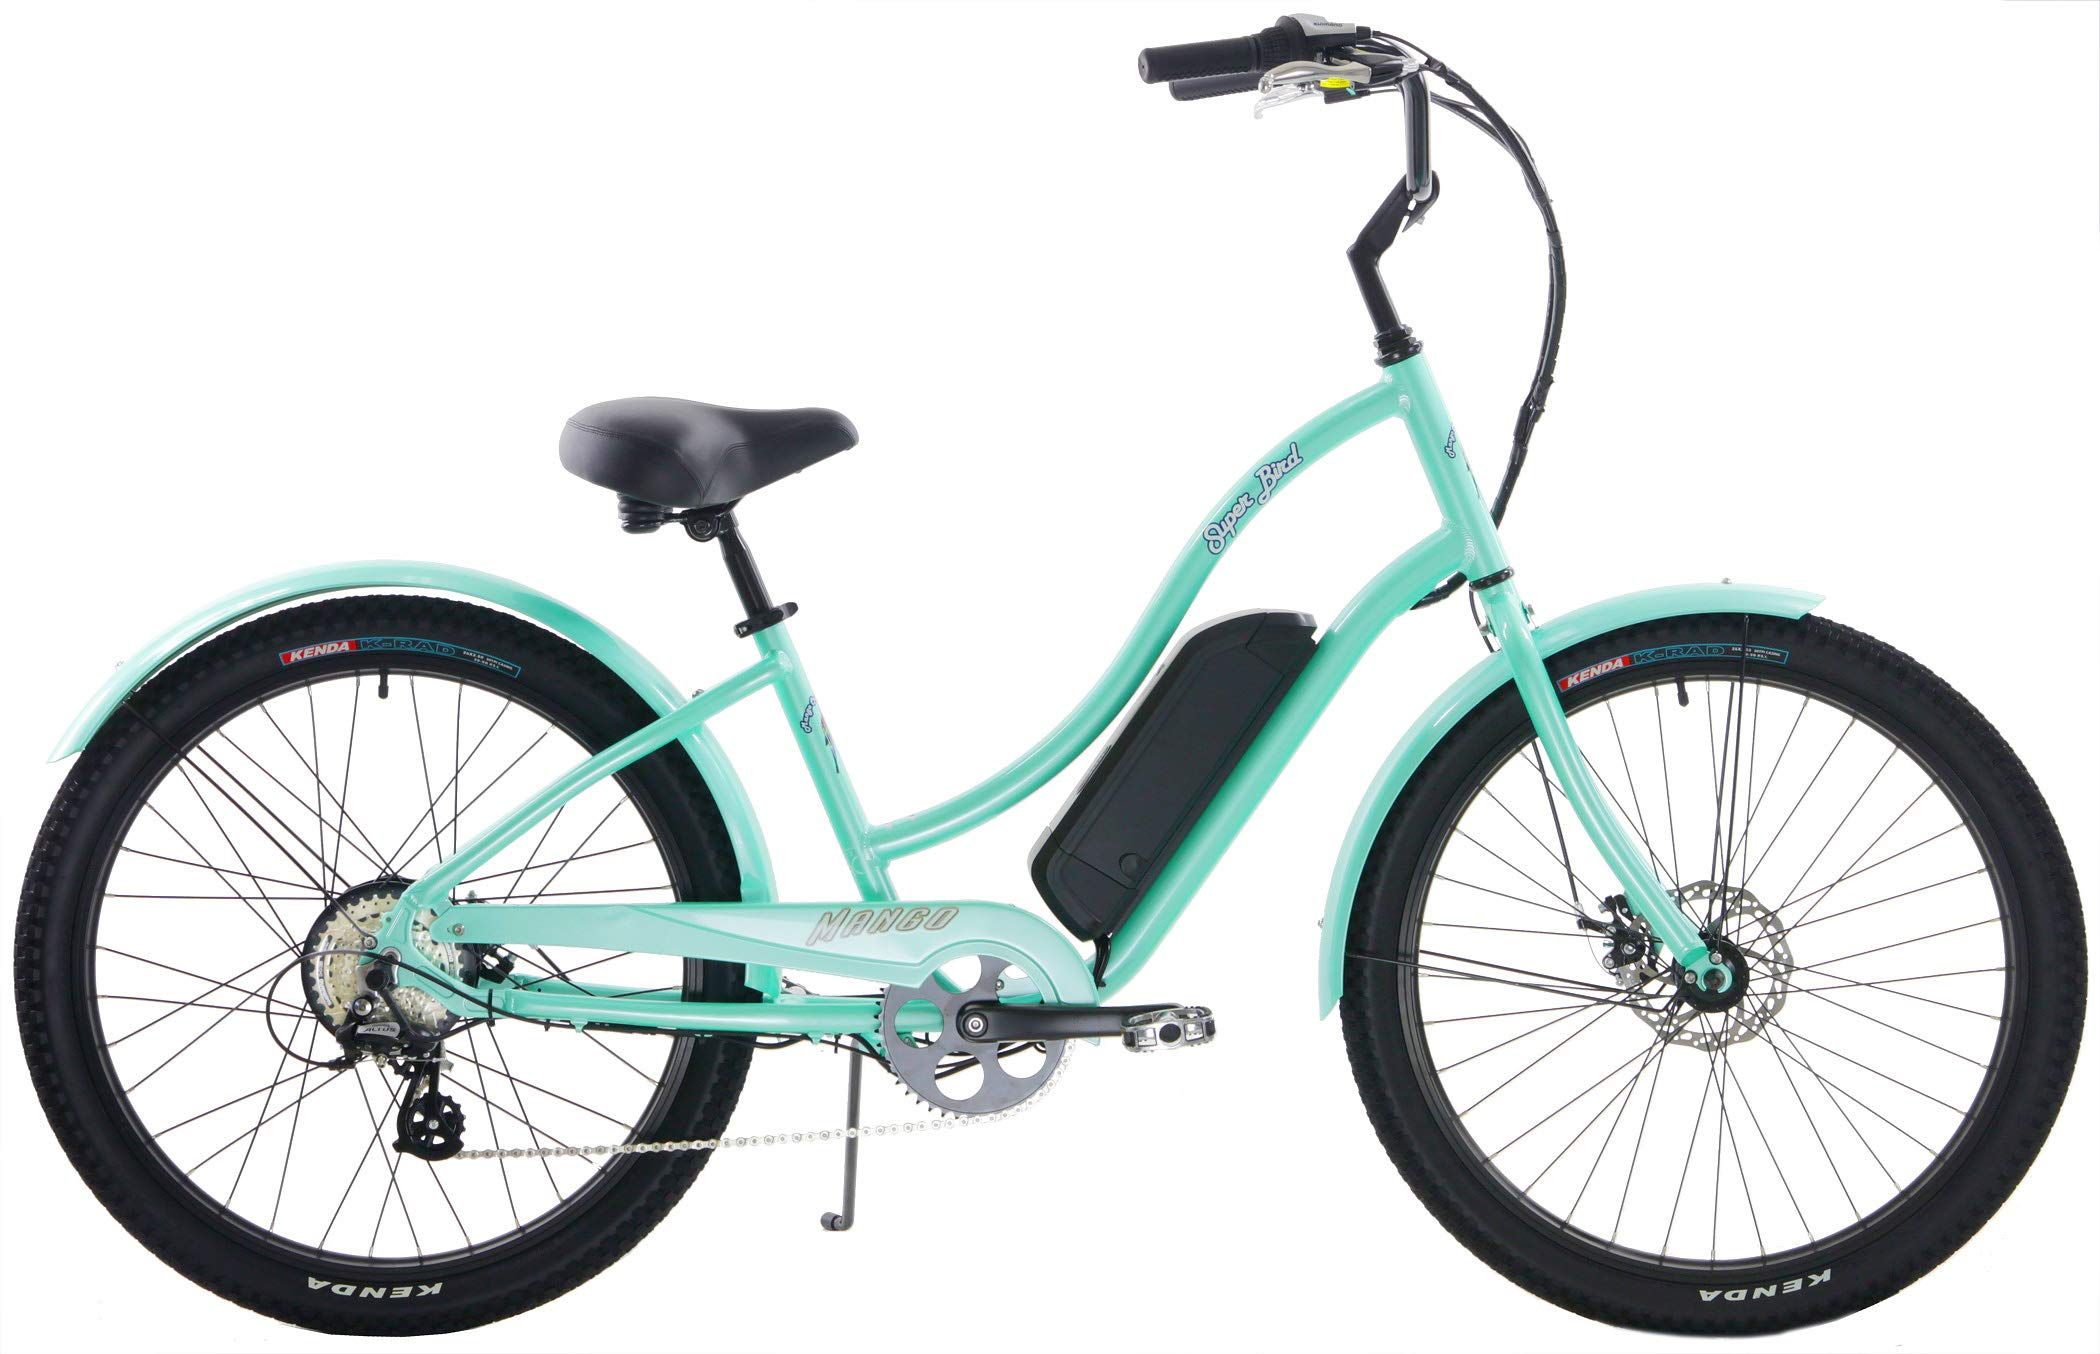 Quality Mango Superbird 8 Speed eBike Cruiser Aluminum 250w Electric Bicycle with Disc Brakes (Seafoam Green, Ladies)